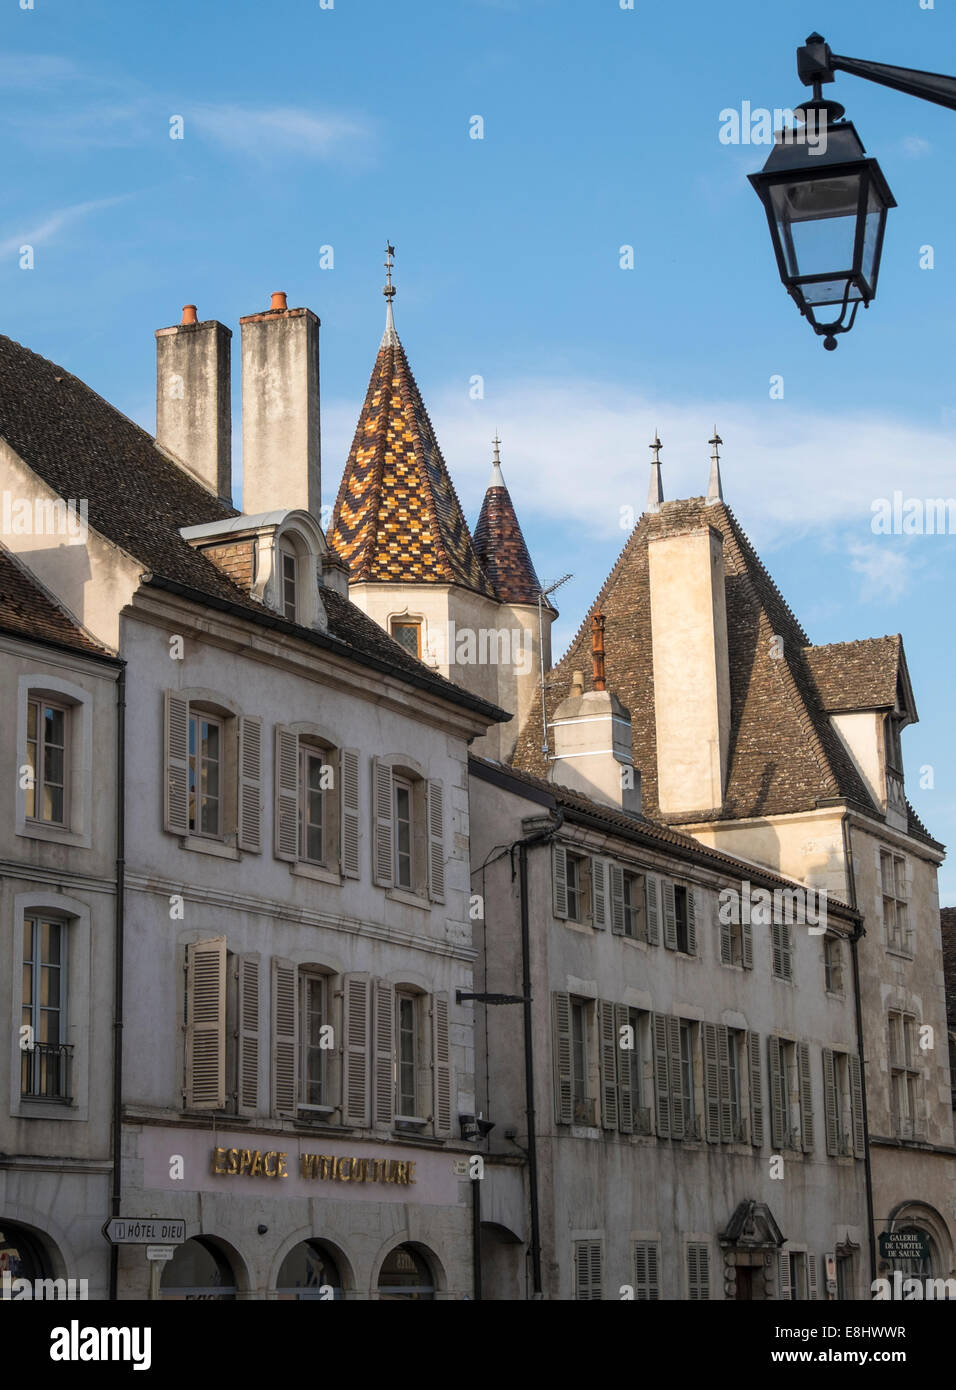 The centre of Beaune - buildings, Beaune, France - Stock Image